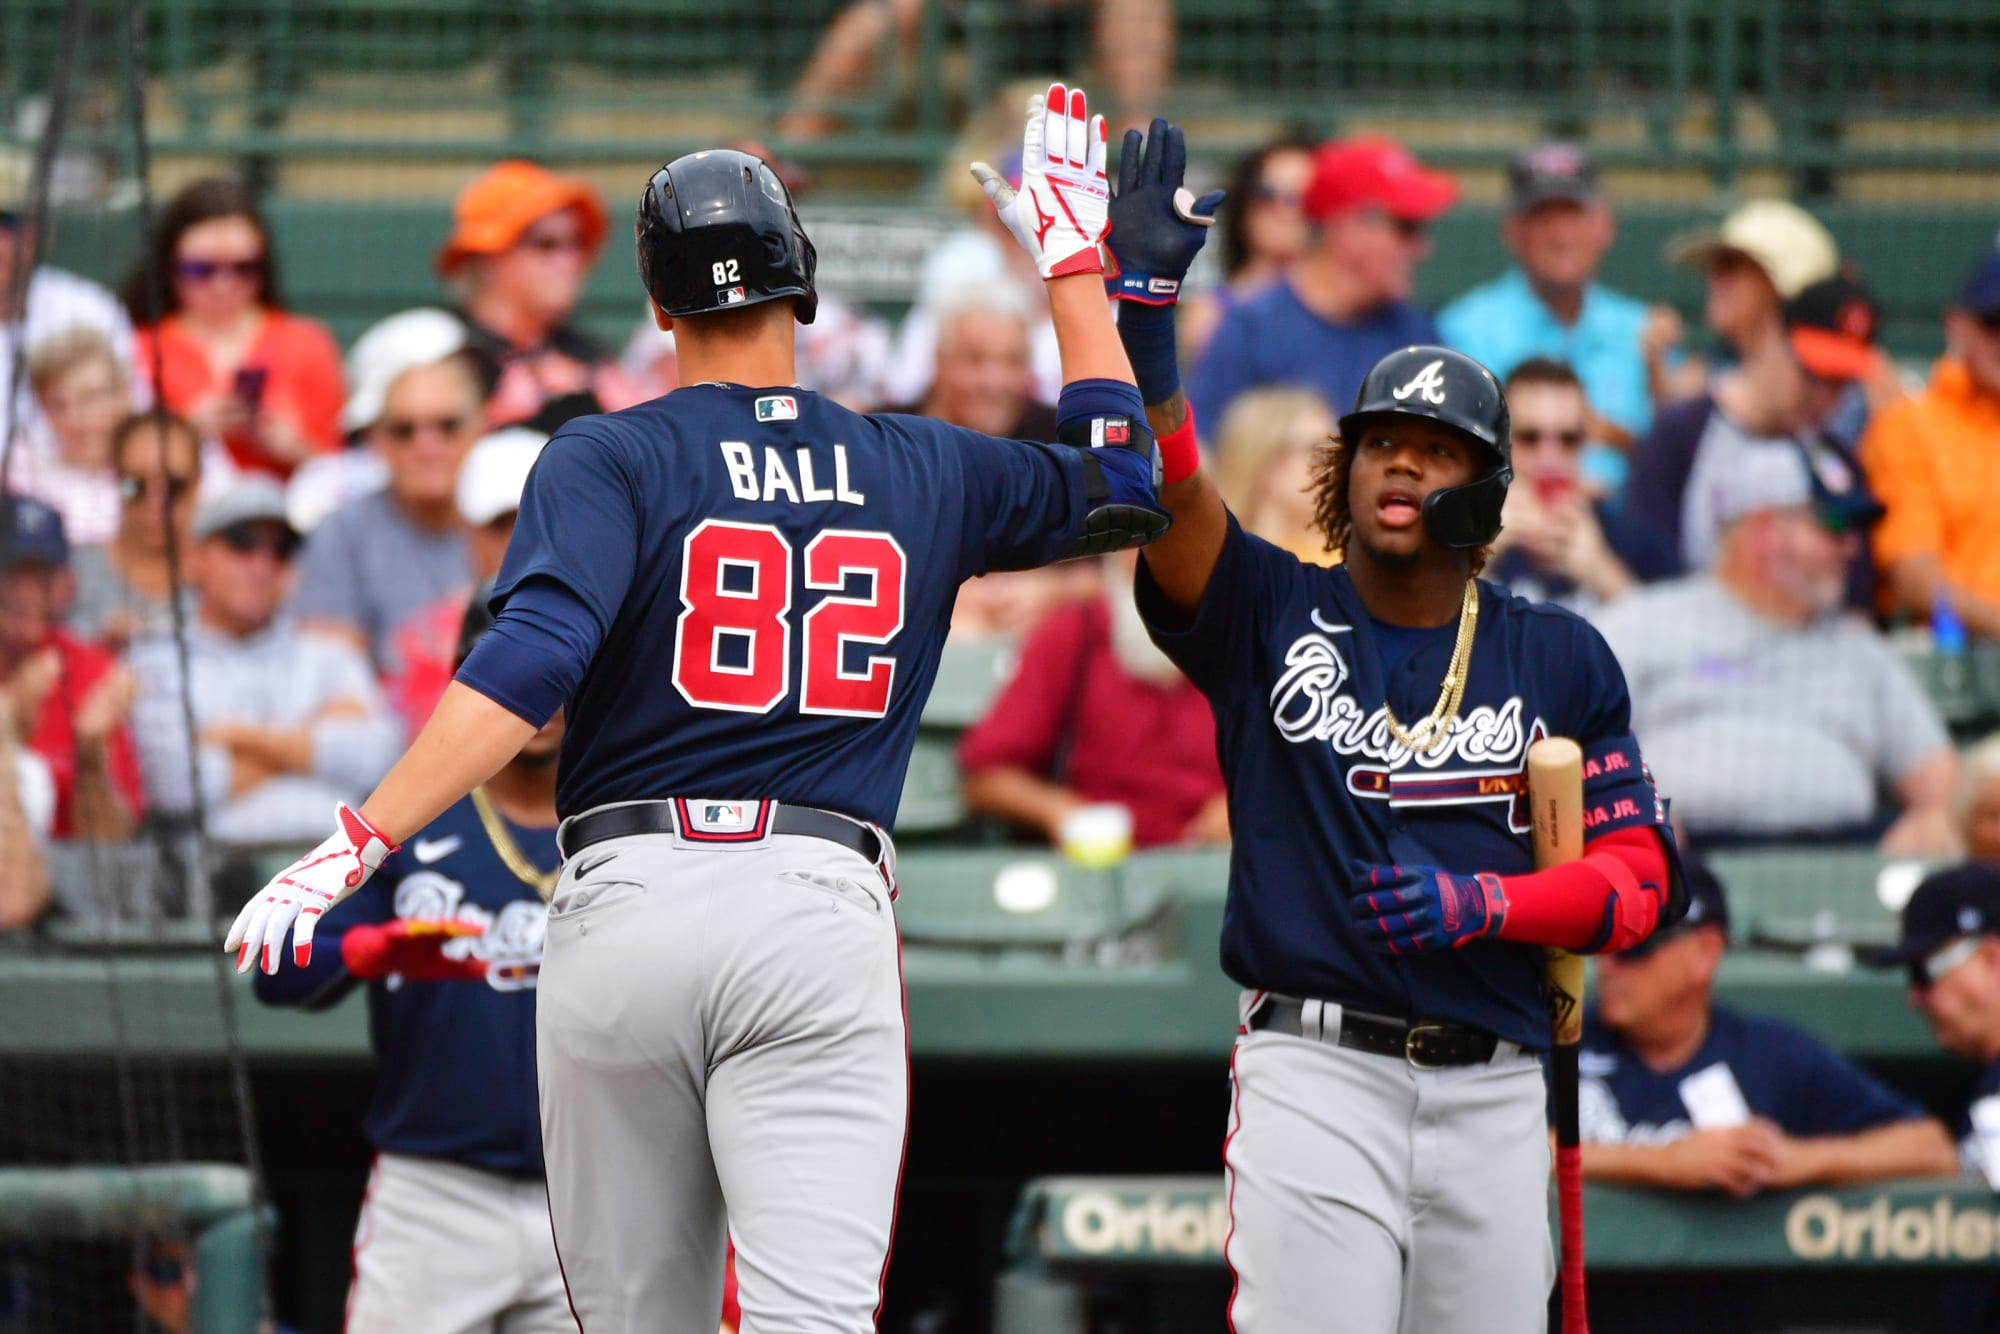 Atlanta Braves add exciting young infield prospect to player pool